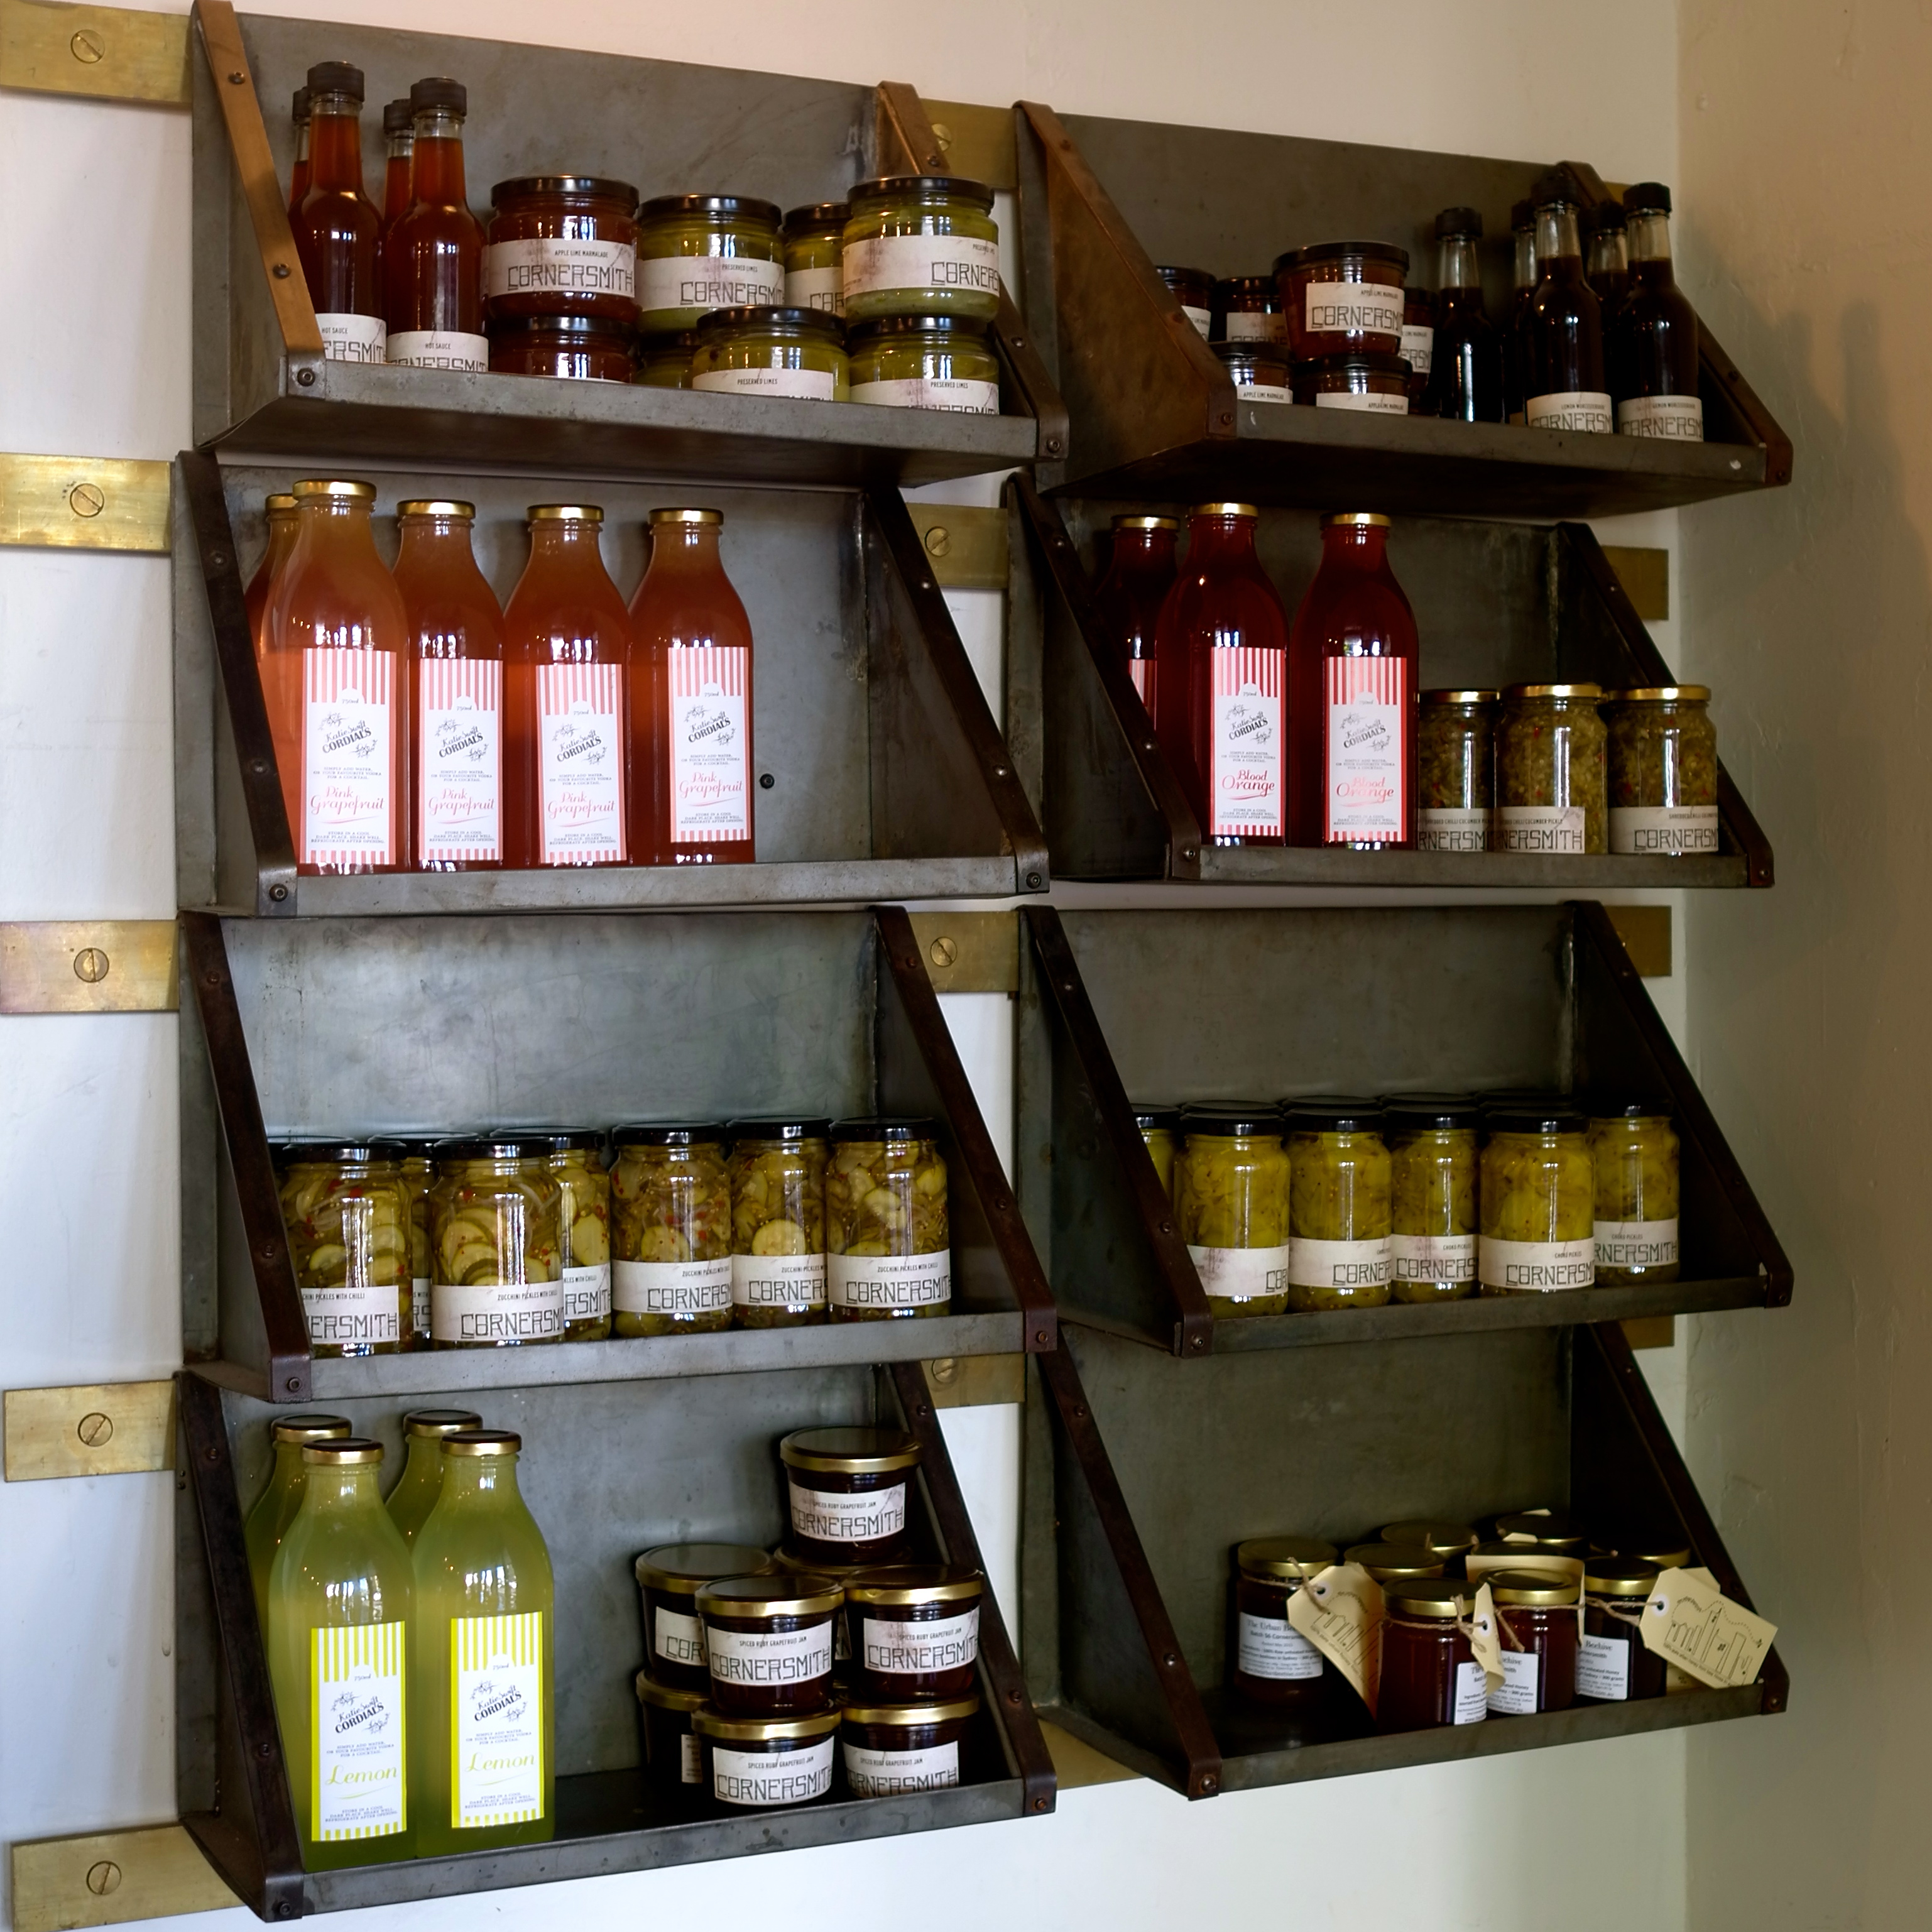 Cornersmith Pickles and Preserves (Image by TSL)